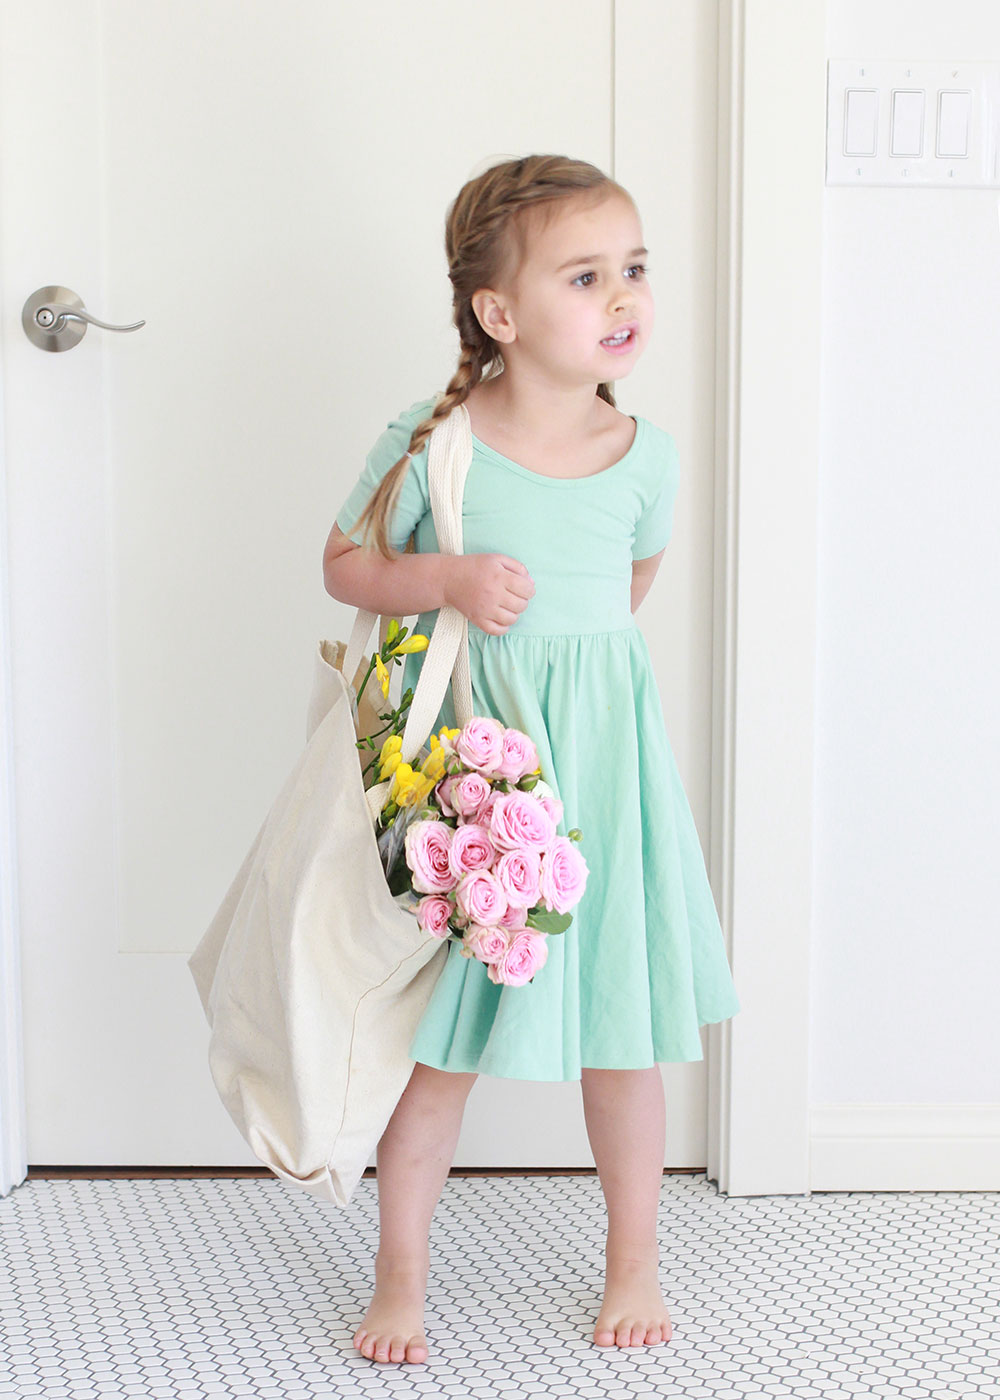 spring dress ups for little girls and boys! | thelovedesignedlife.com